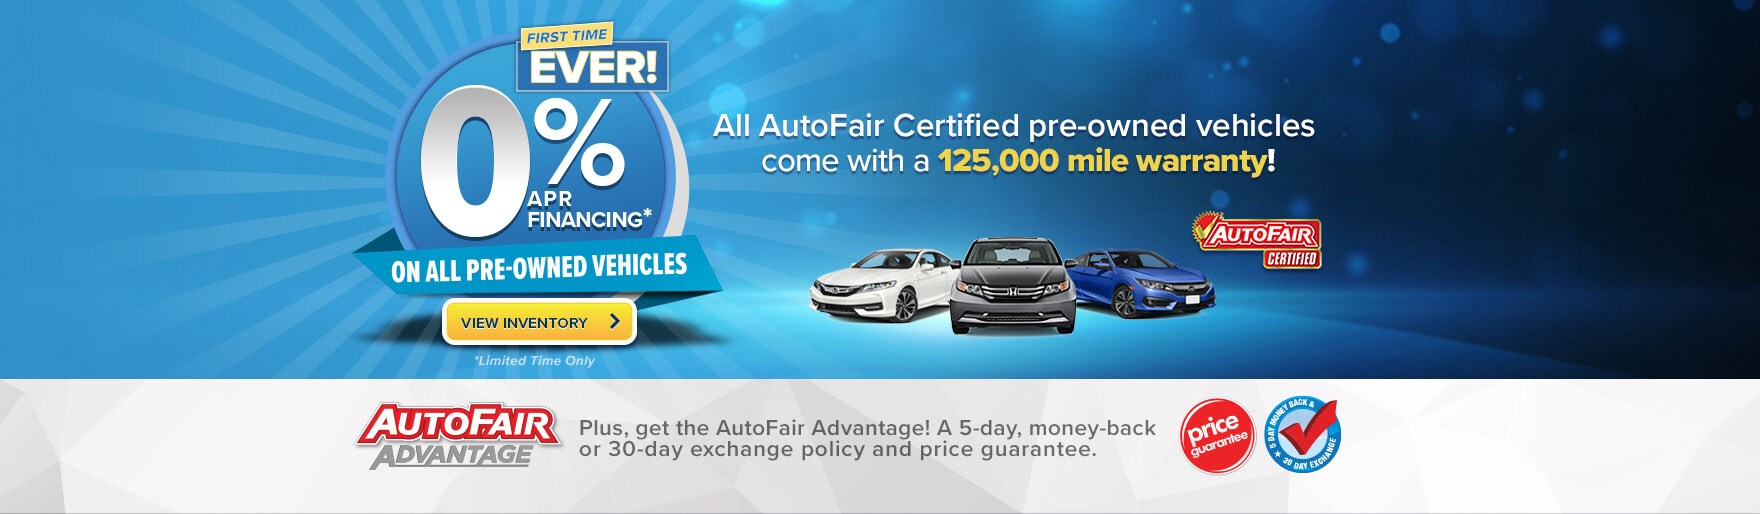 New honda specials autofair honda in manchester nh for Autofair honda manchester